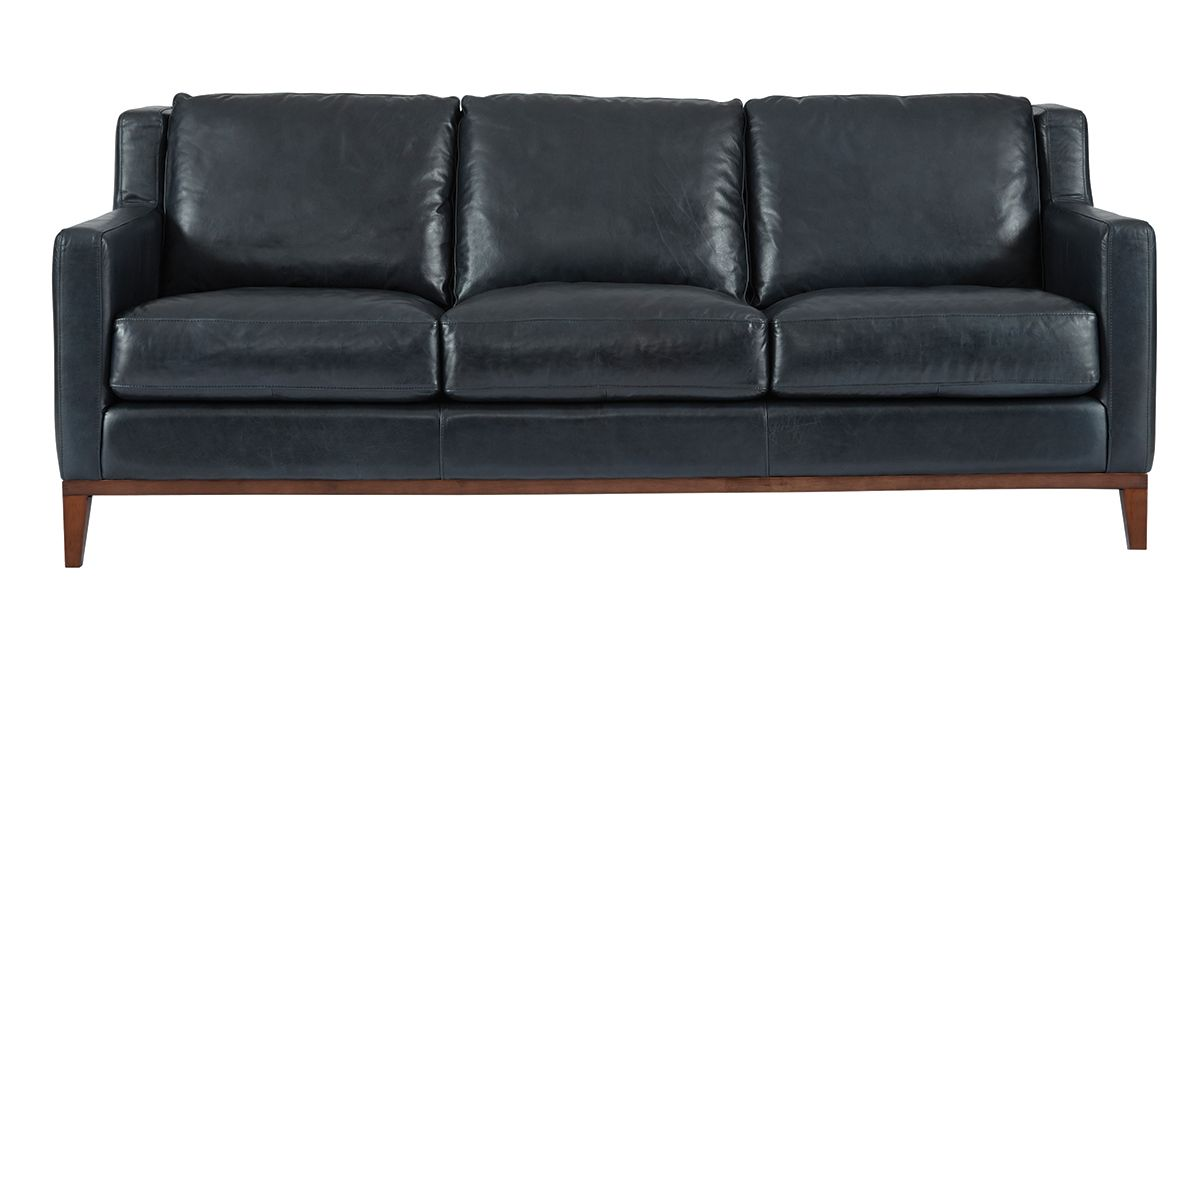 The Dump Furniture Tannery Closeout Arden Sofa